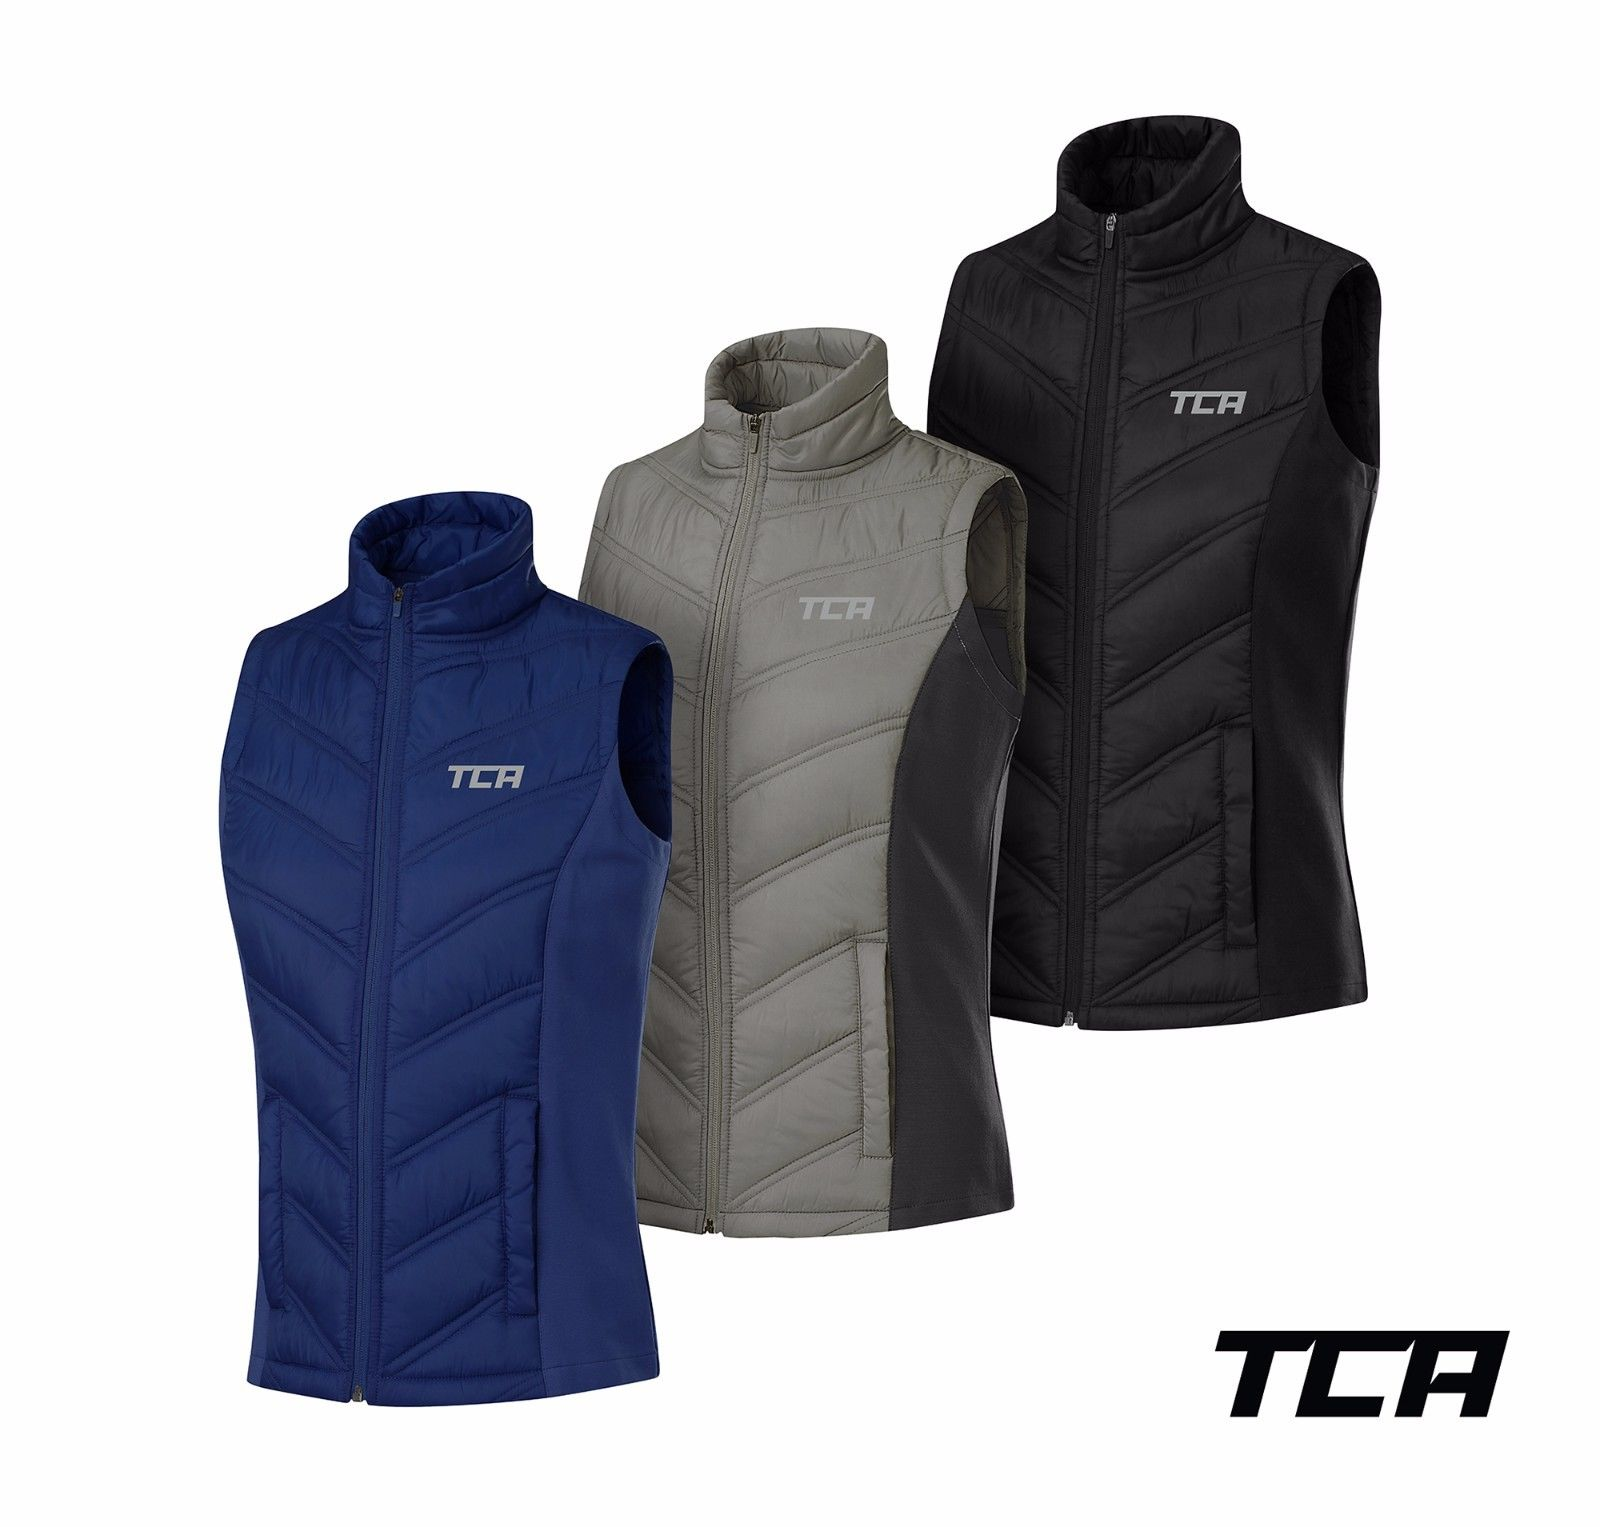 TCA Womens Excel Runner Lightweight Running Gilet Bodywarmer with Zip Pockets